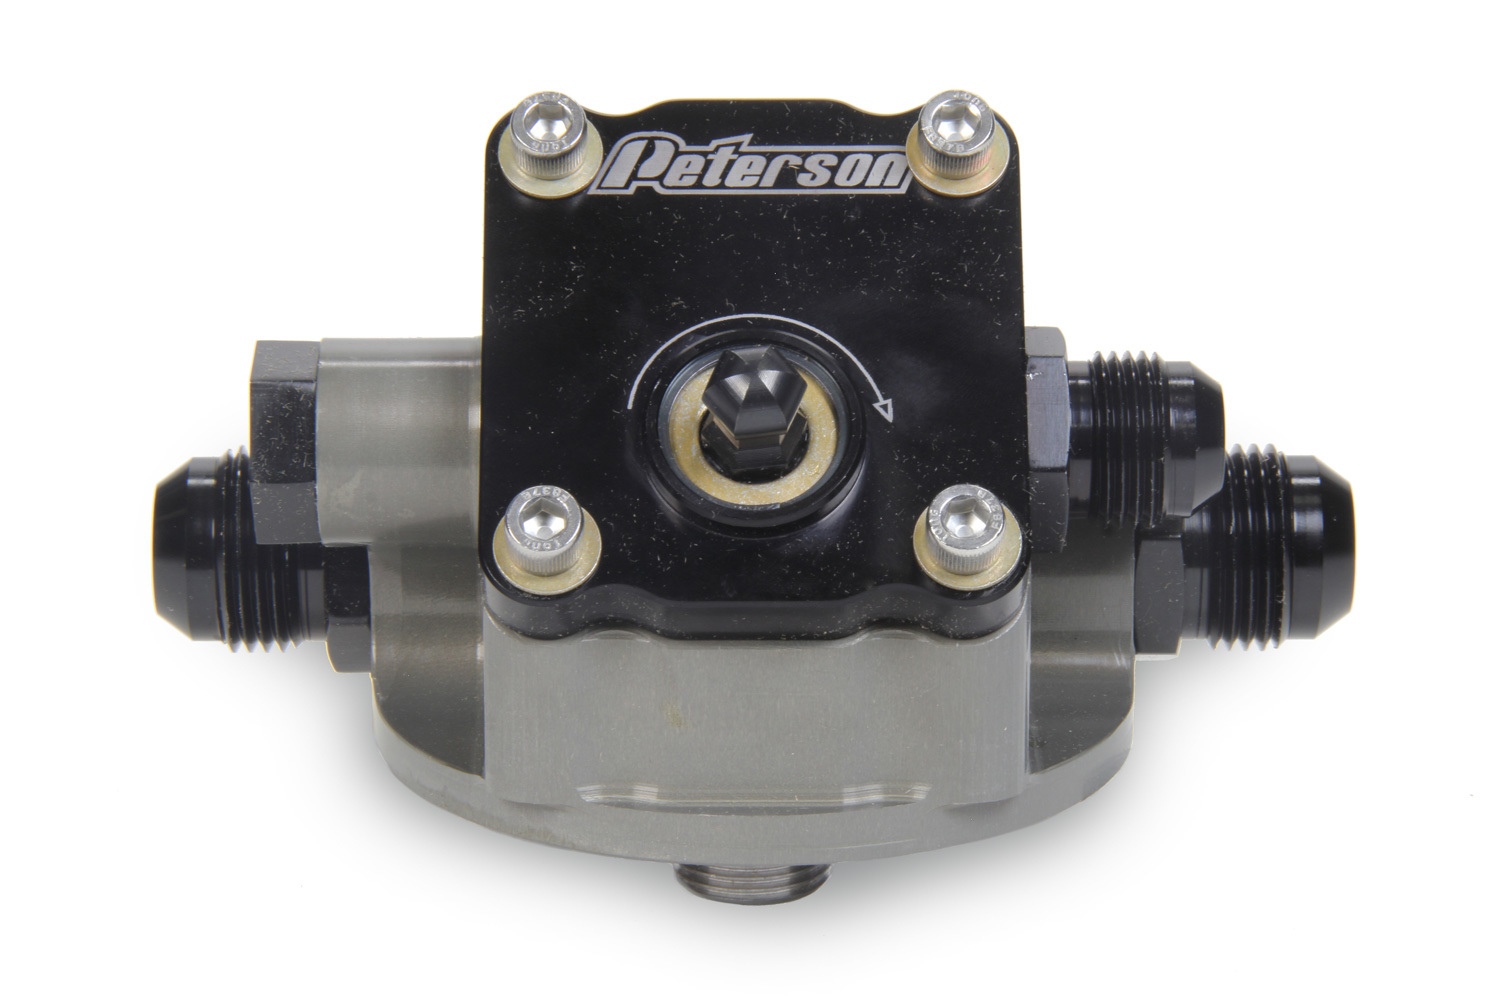 Peterson Fluid 09-1504 Oil Filter Mount, Primer Pump, 12 AN Male Ports, 13/16-16 in Center Thread, Aluminum, Gray Anodized, Universal, Each